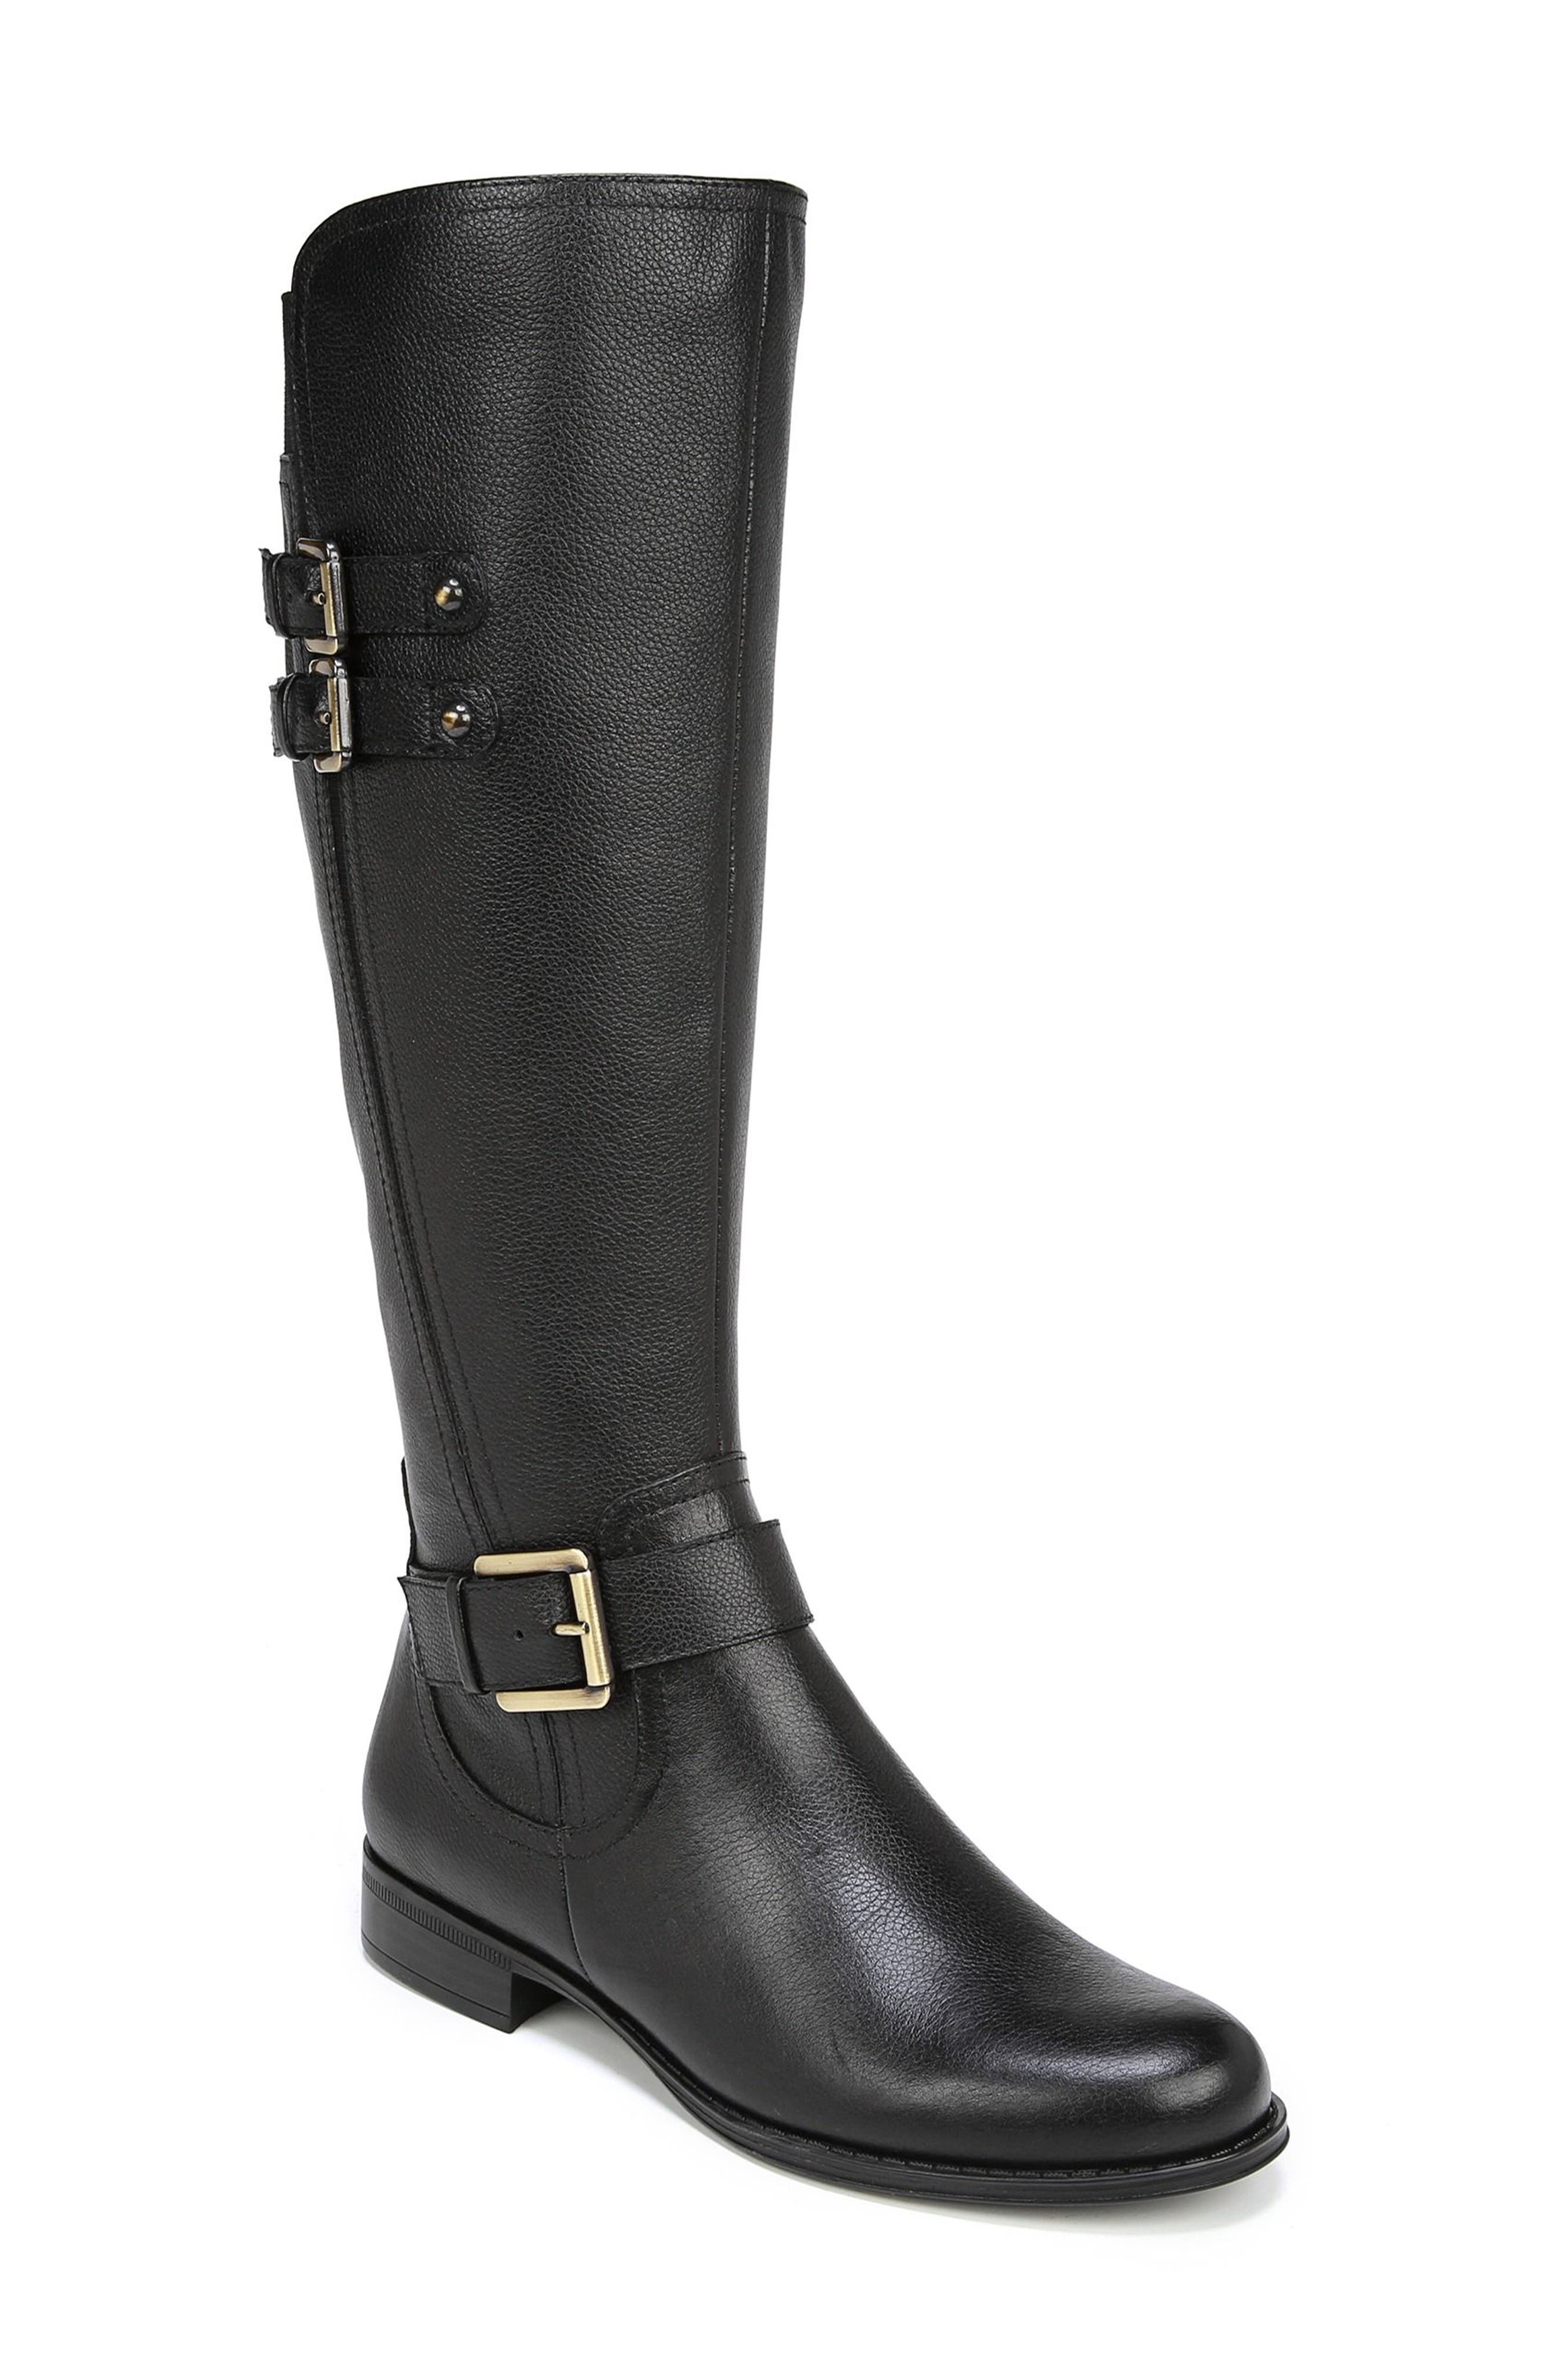 Naturalizer Jessie Knee High Riding Boot Wide Calf- Black